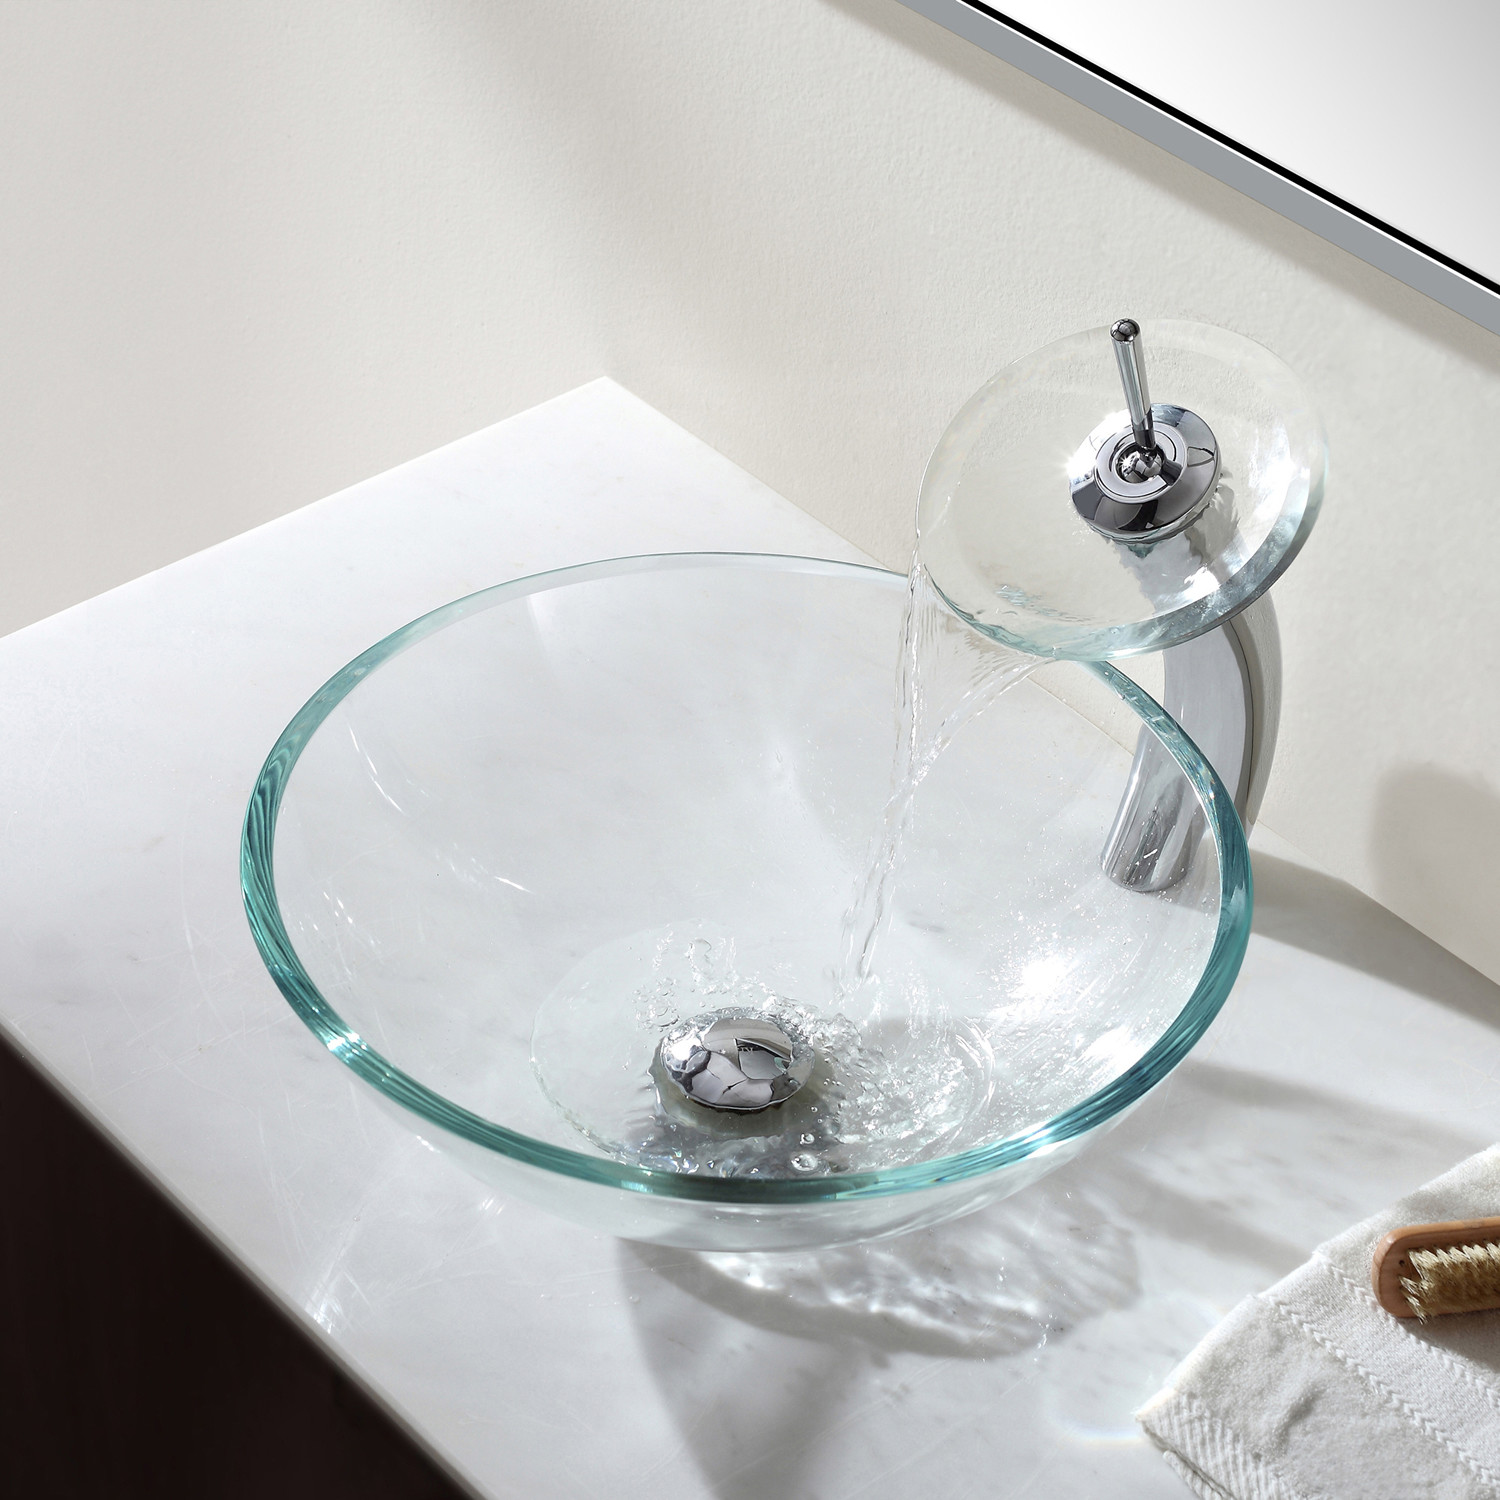 Crystal clear glass vessel sink waterfall faucet chrome kraus touch of modern - Waterfall faucet for sink ...